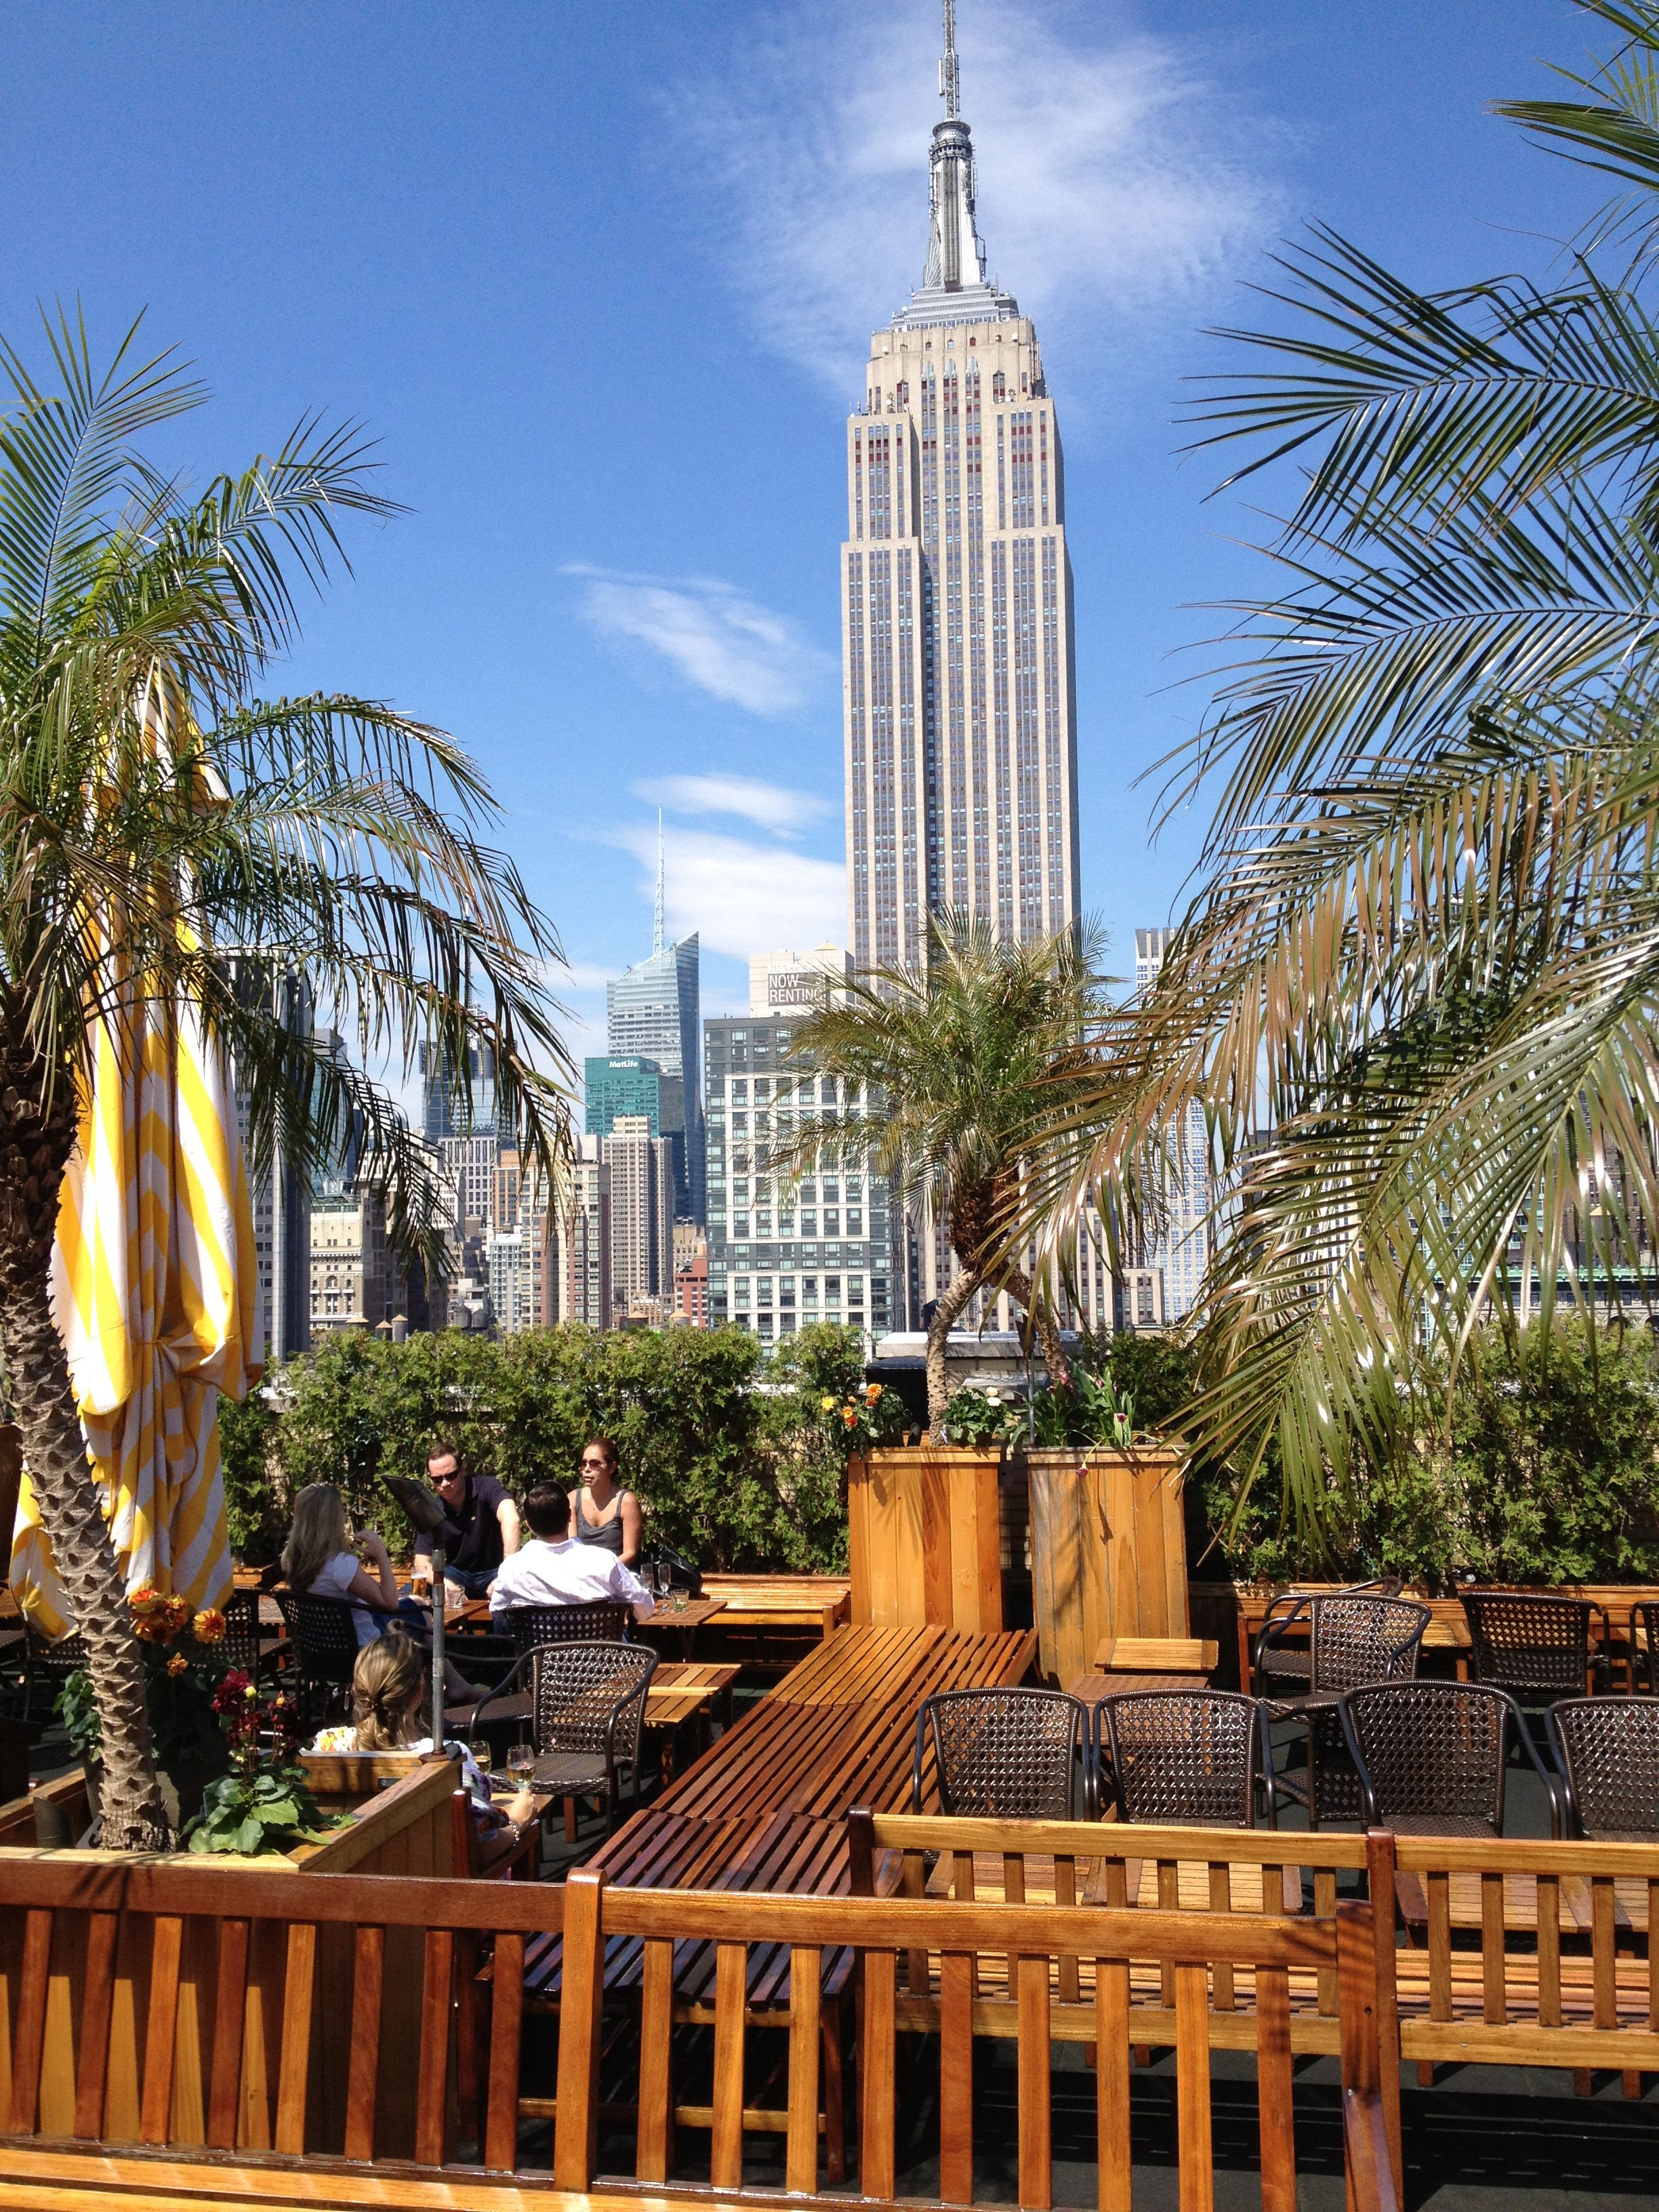 Rooftop Bar. Good Garden Bar With View Of Empire State Building York